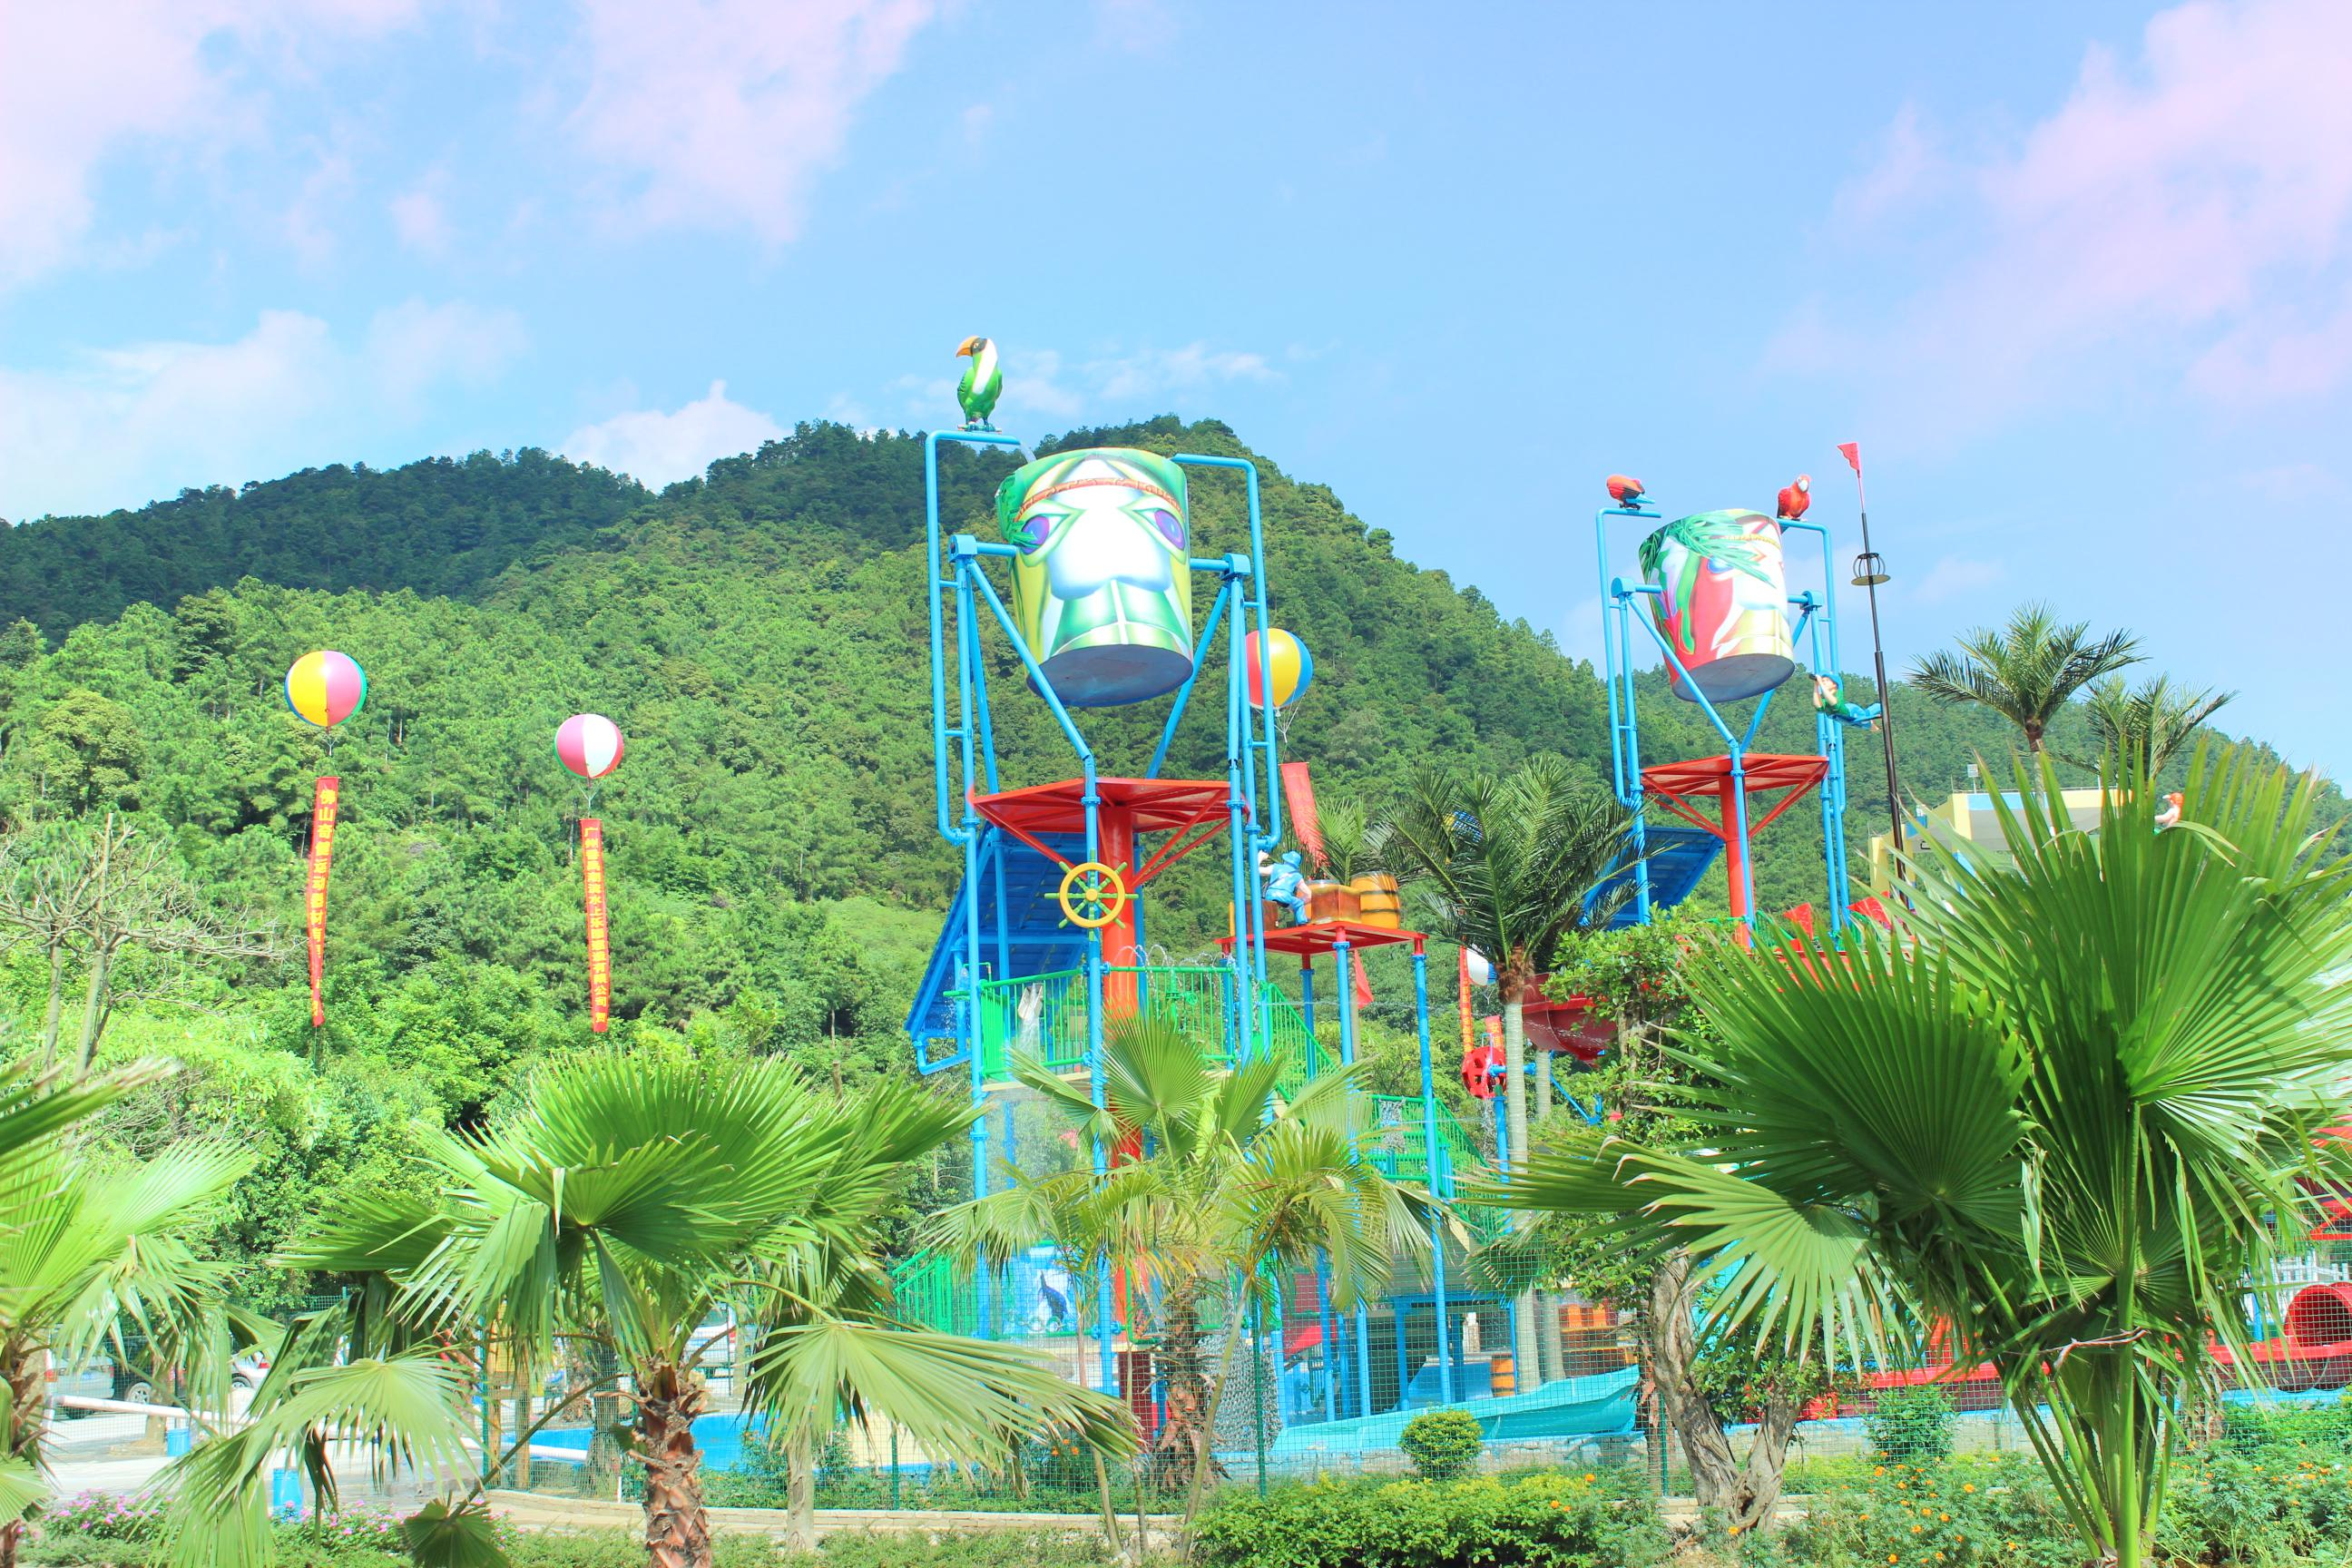 Sihui Mountain Water Amusement Park